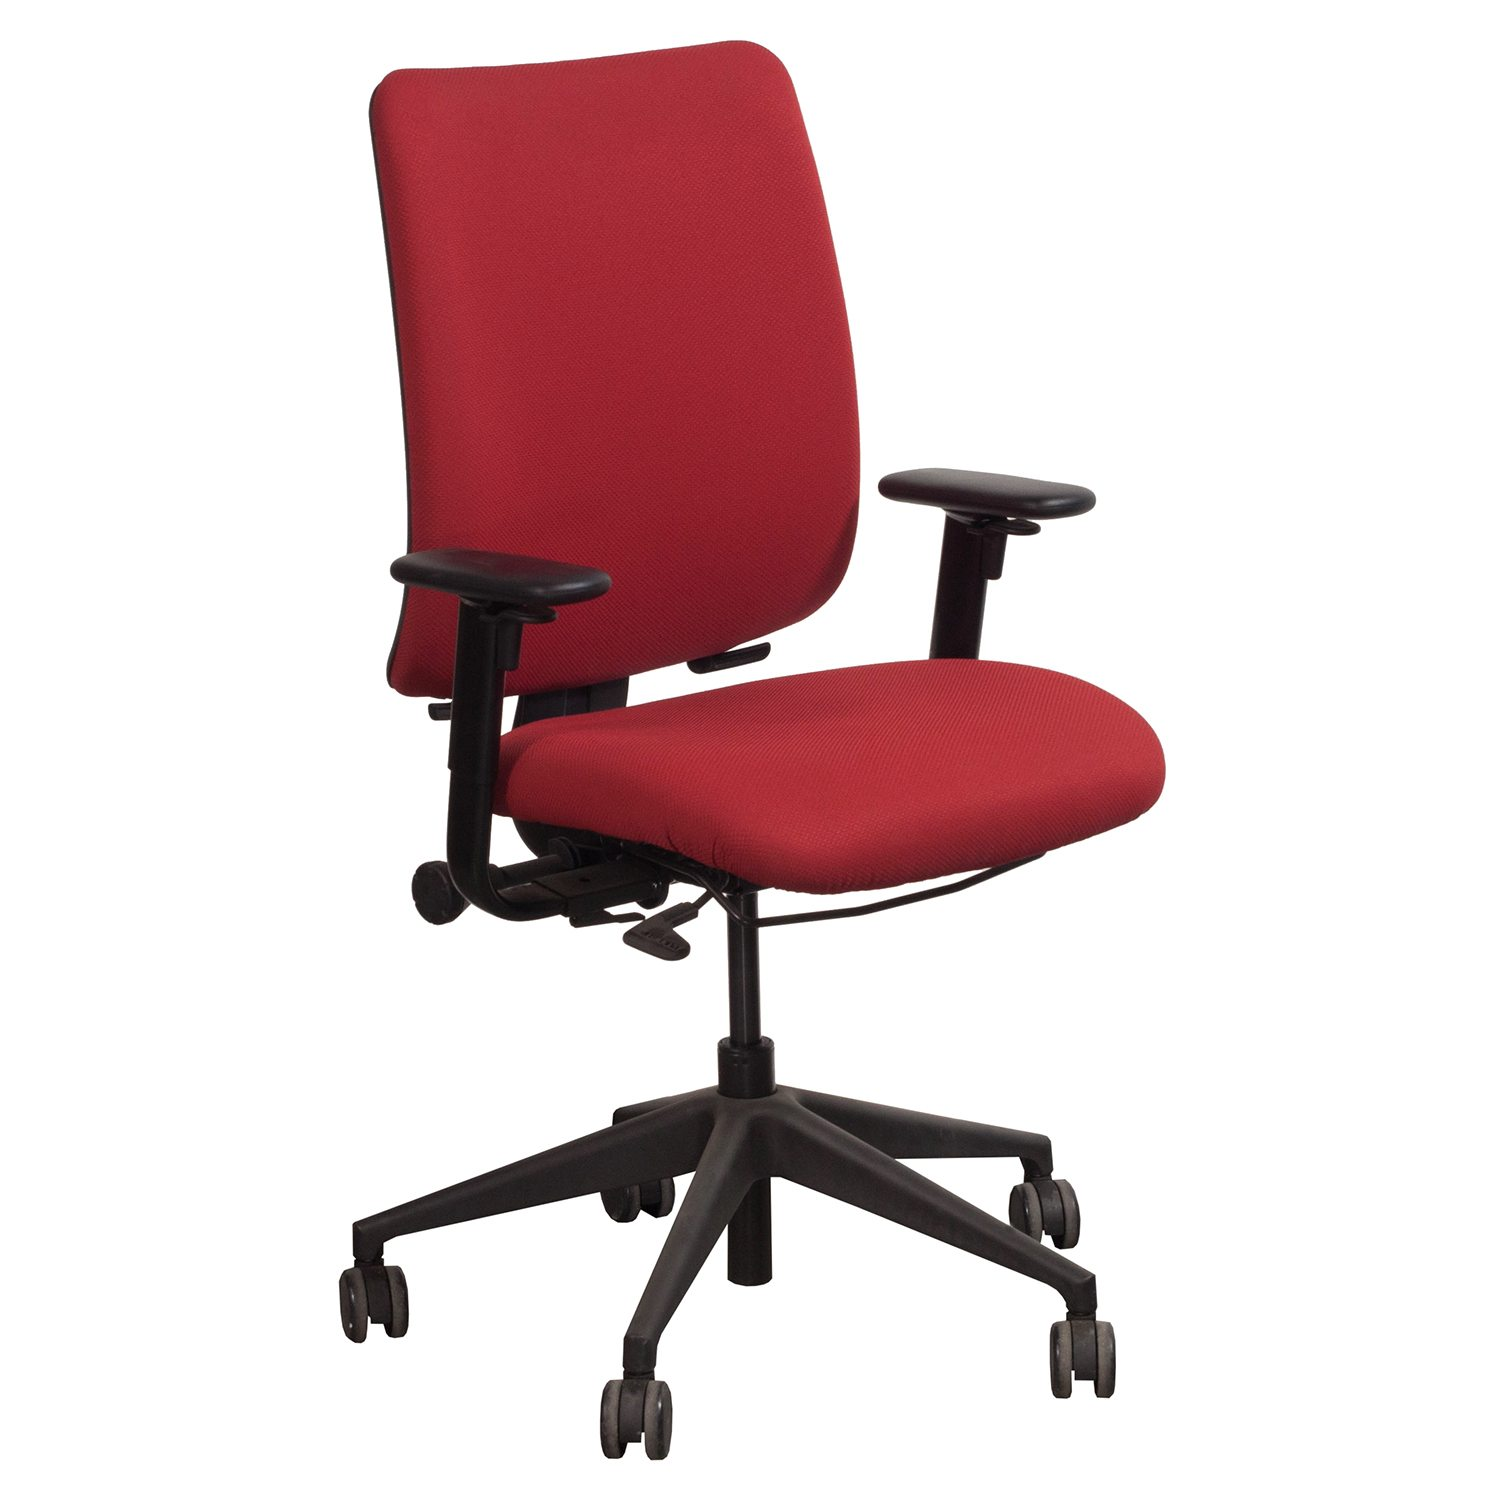 office chair rowing ebay massage steelcase turnstone crew used task red national